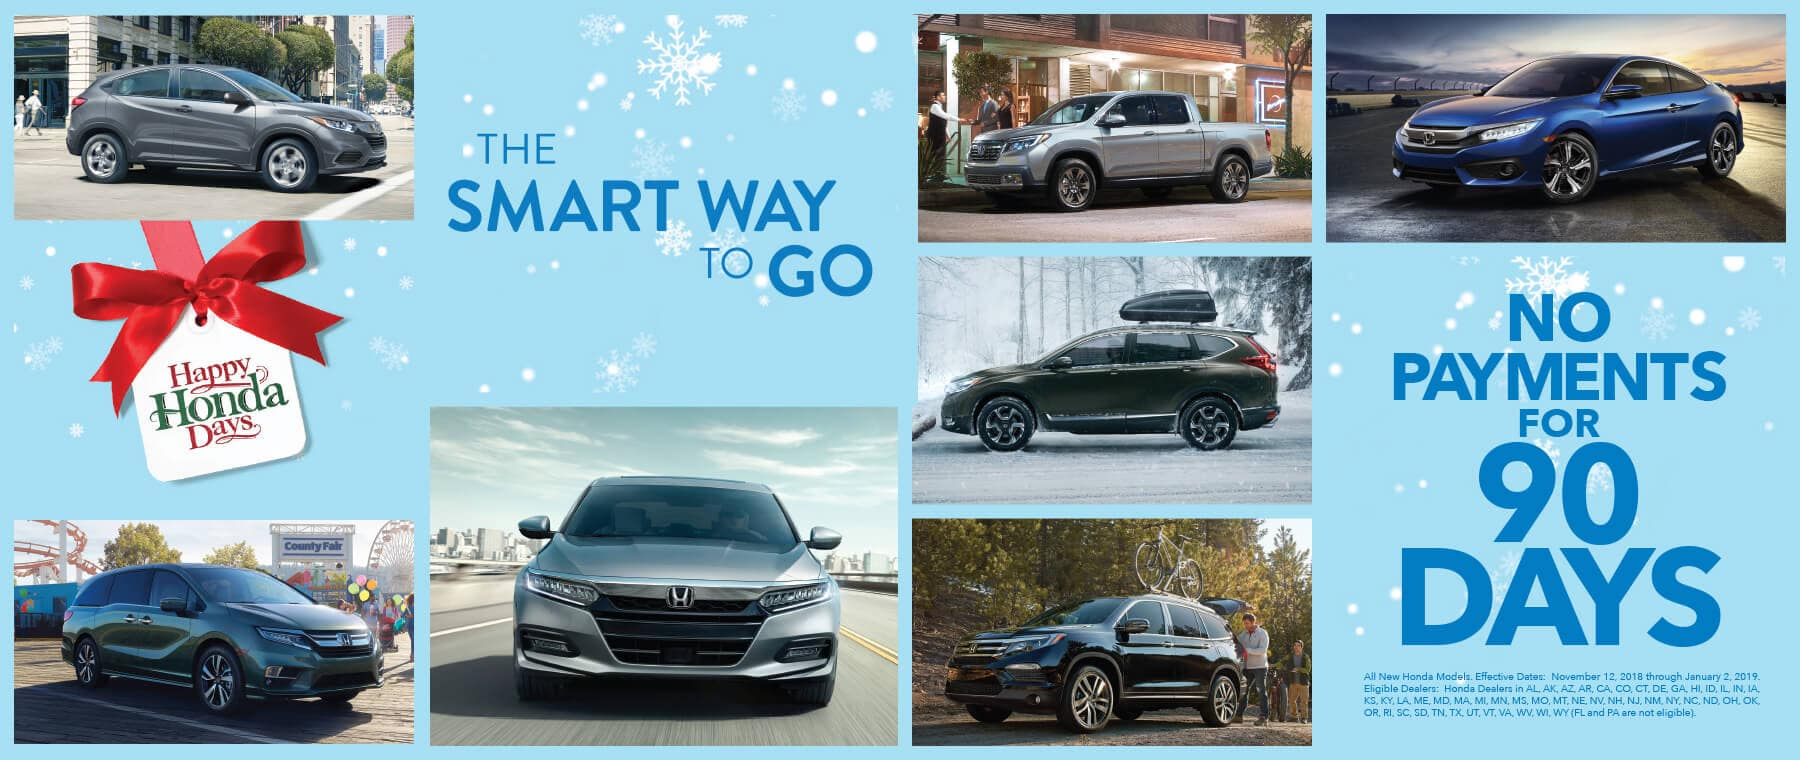 Detroit Area Honda Dealers Happy Honda Days 90-Day Deferment